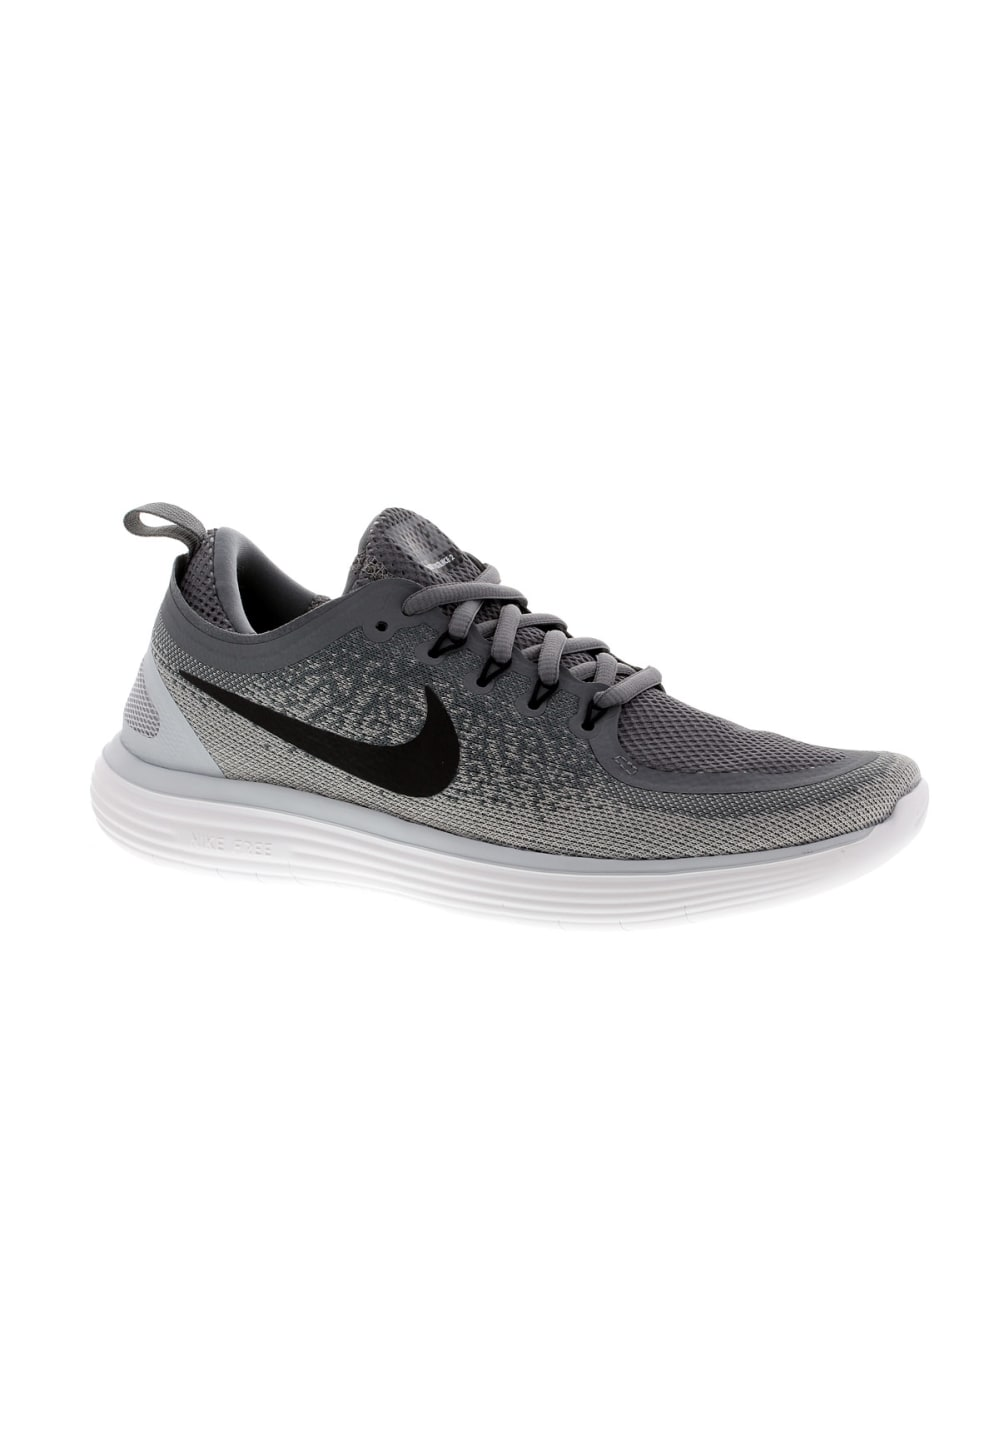 get cheap 3174c c6c77 Nike Free RN Distance 2 - Running shoes for Men - Grey